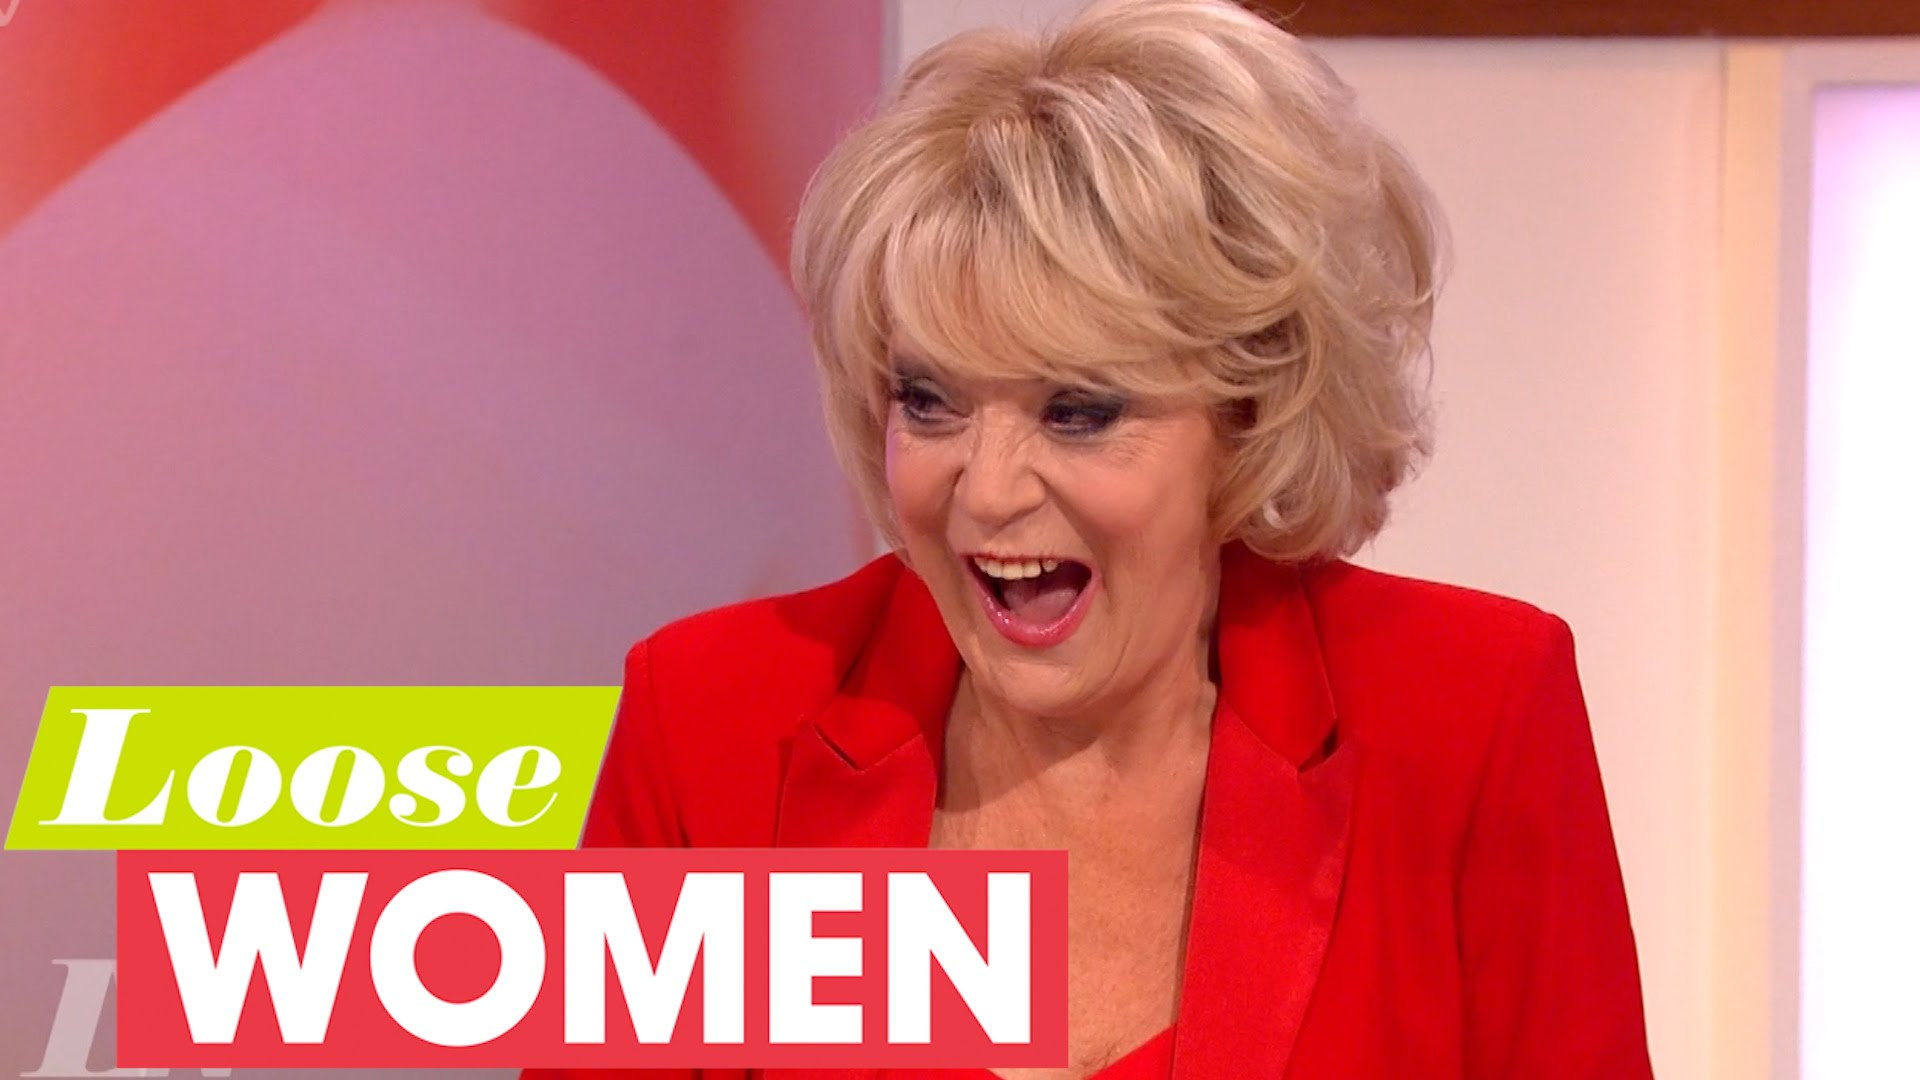 Sherrie Hewson naked (11 photos), Topless, Sideboobs, Instagram, cleavage 2020